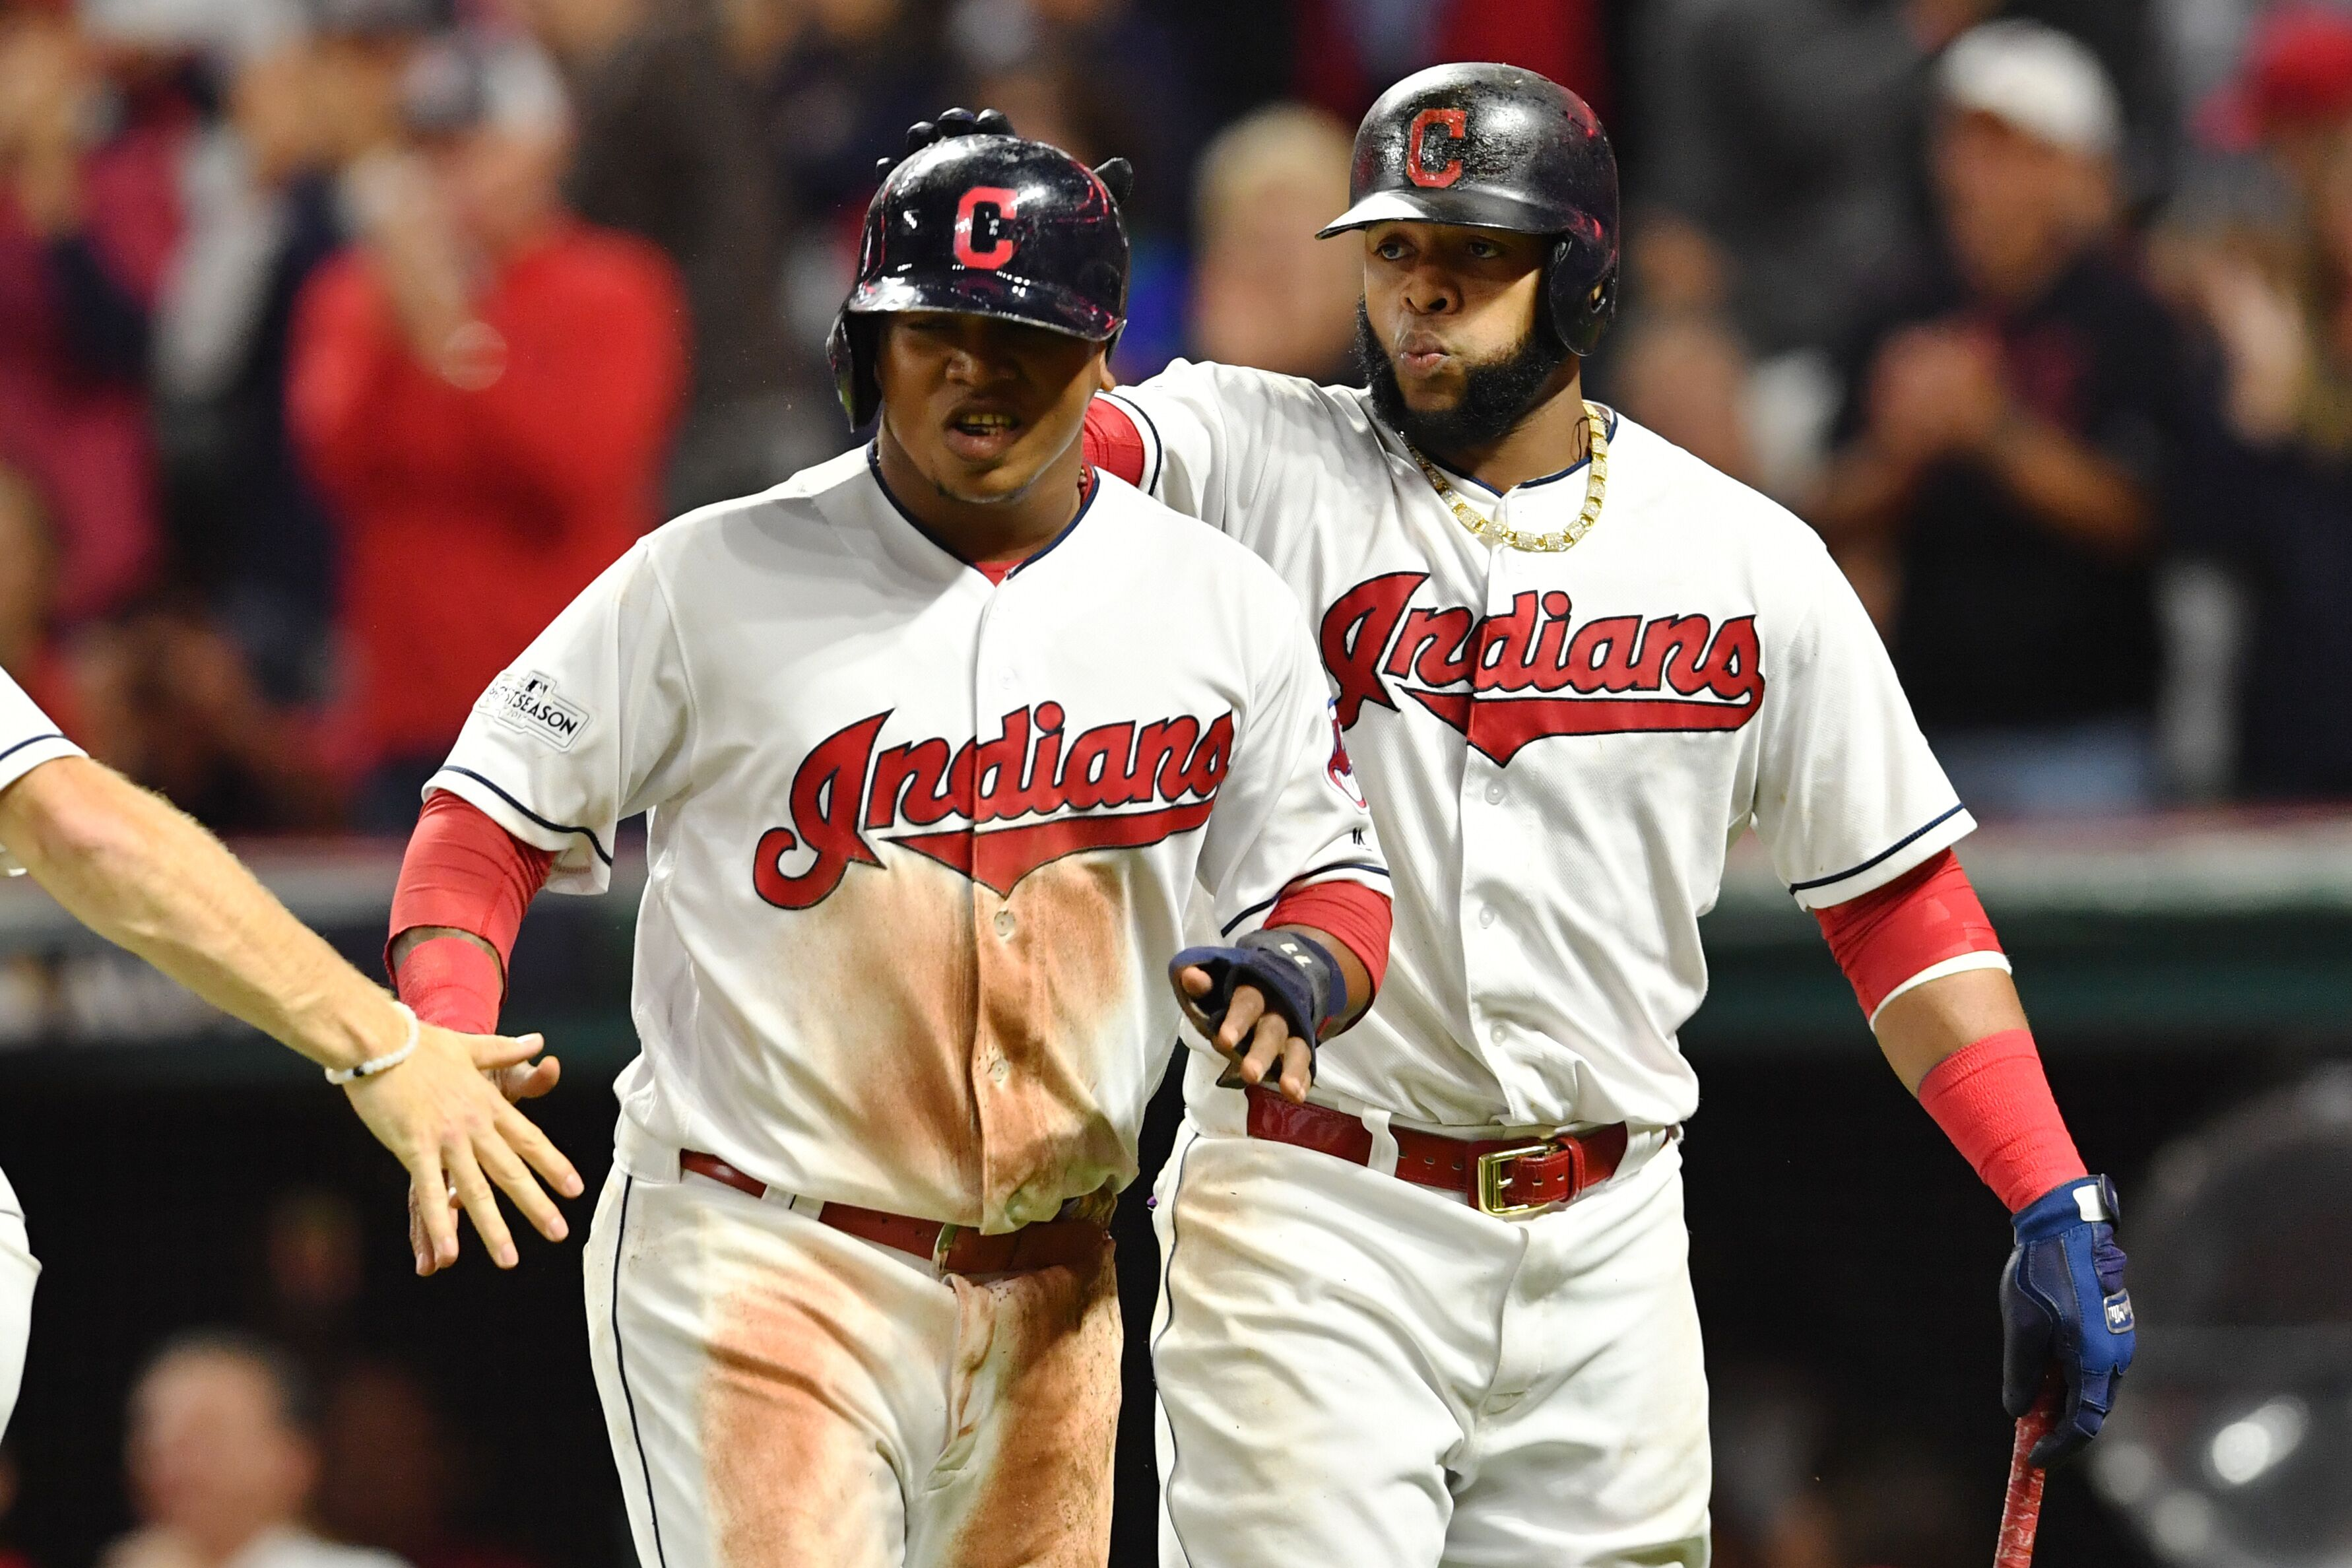 858066762-divisional-round-new-york-yankees-v-cleveland-indians-game-one.jpg